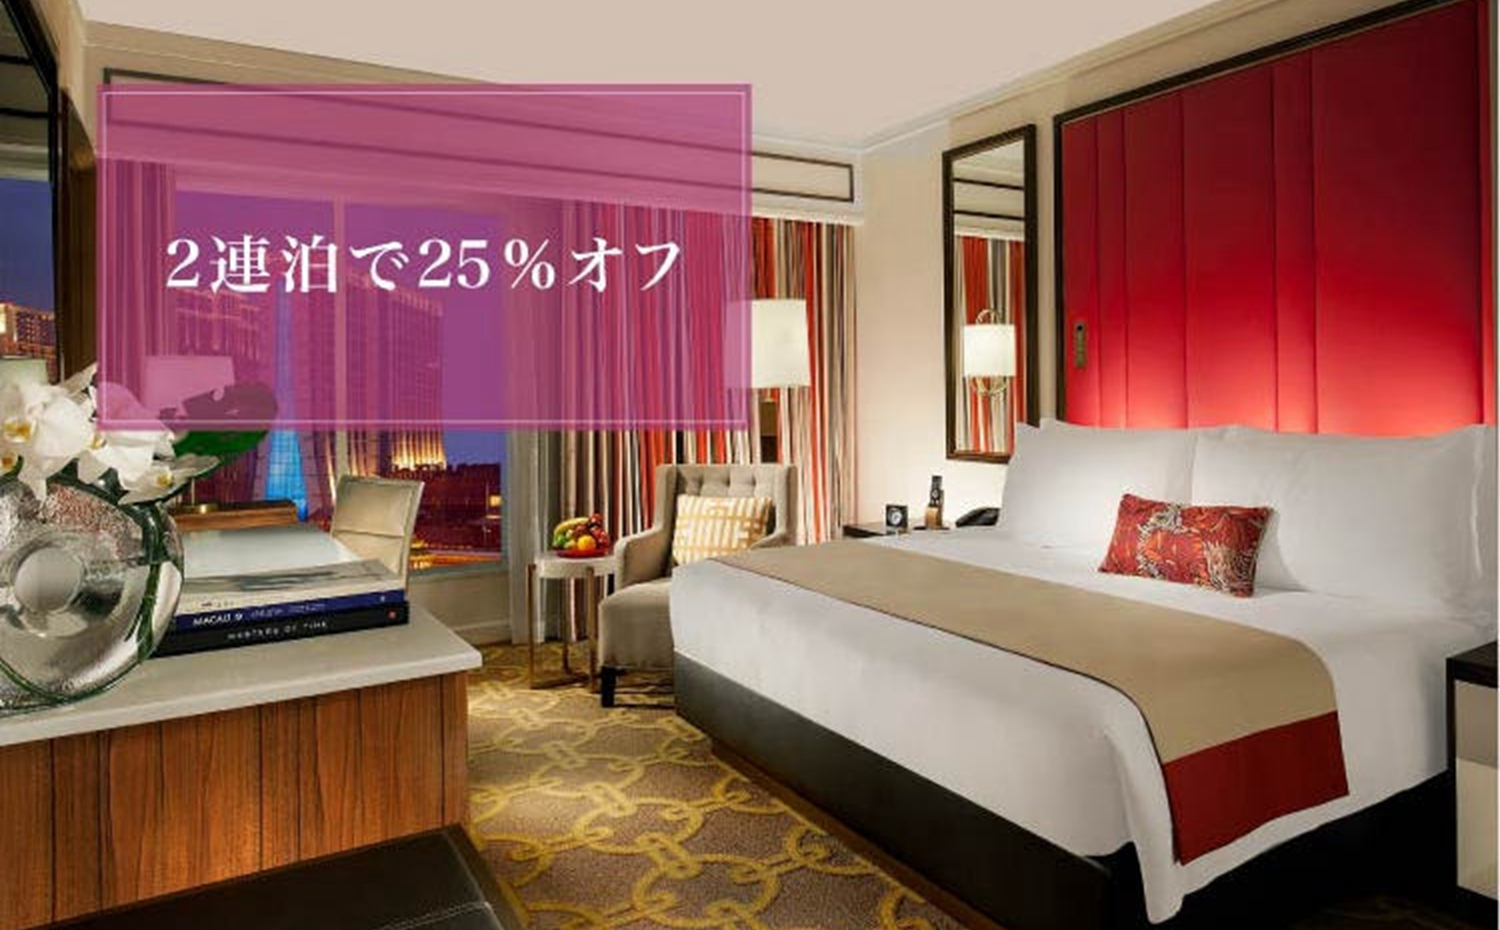 https://assets.sandsresortsmacao.cn/content/parisianmacao/hotel/promotion-offers/stay-2-nights-offer/stay-2-nights-offer-30off_detailpage_1000x620_jp.jpg